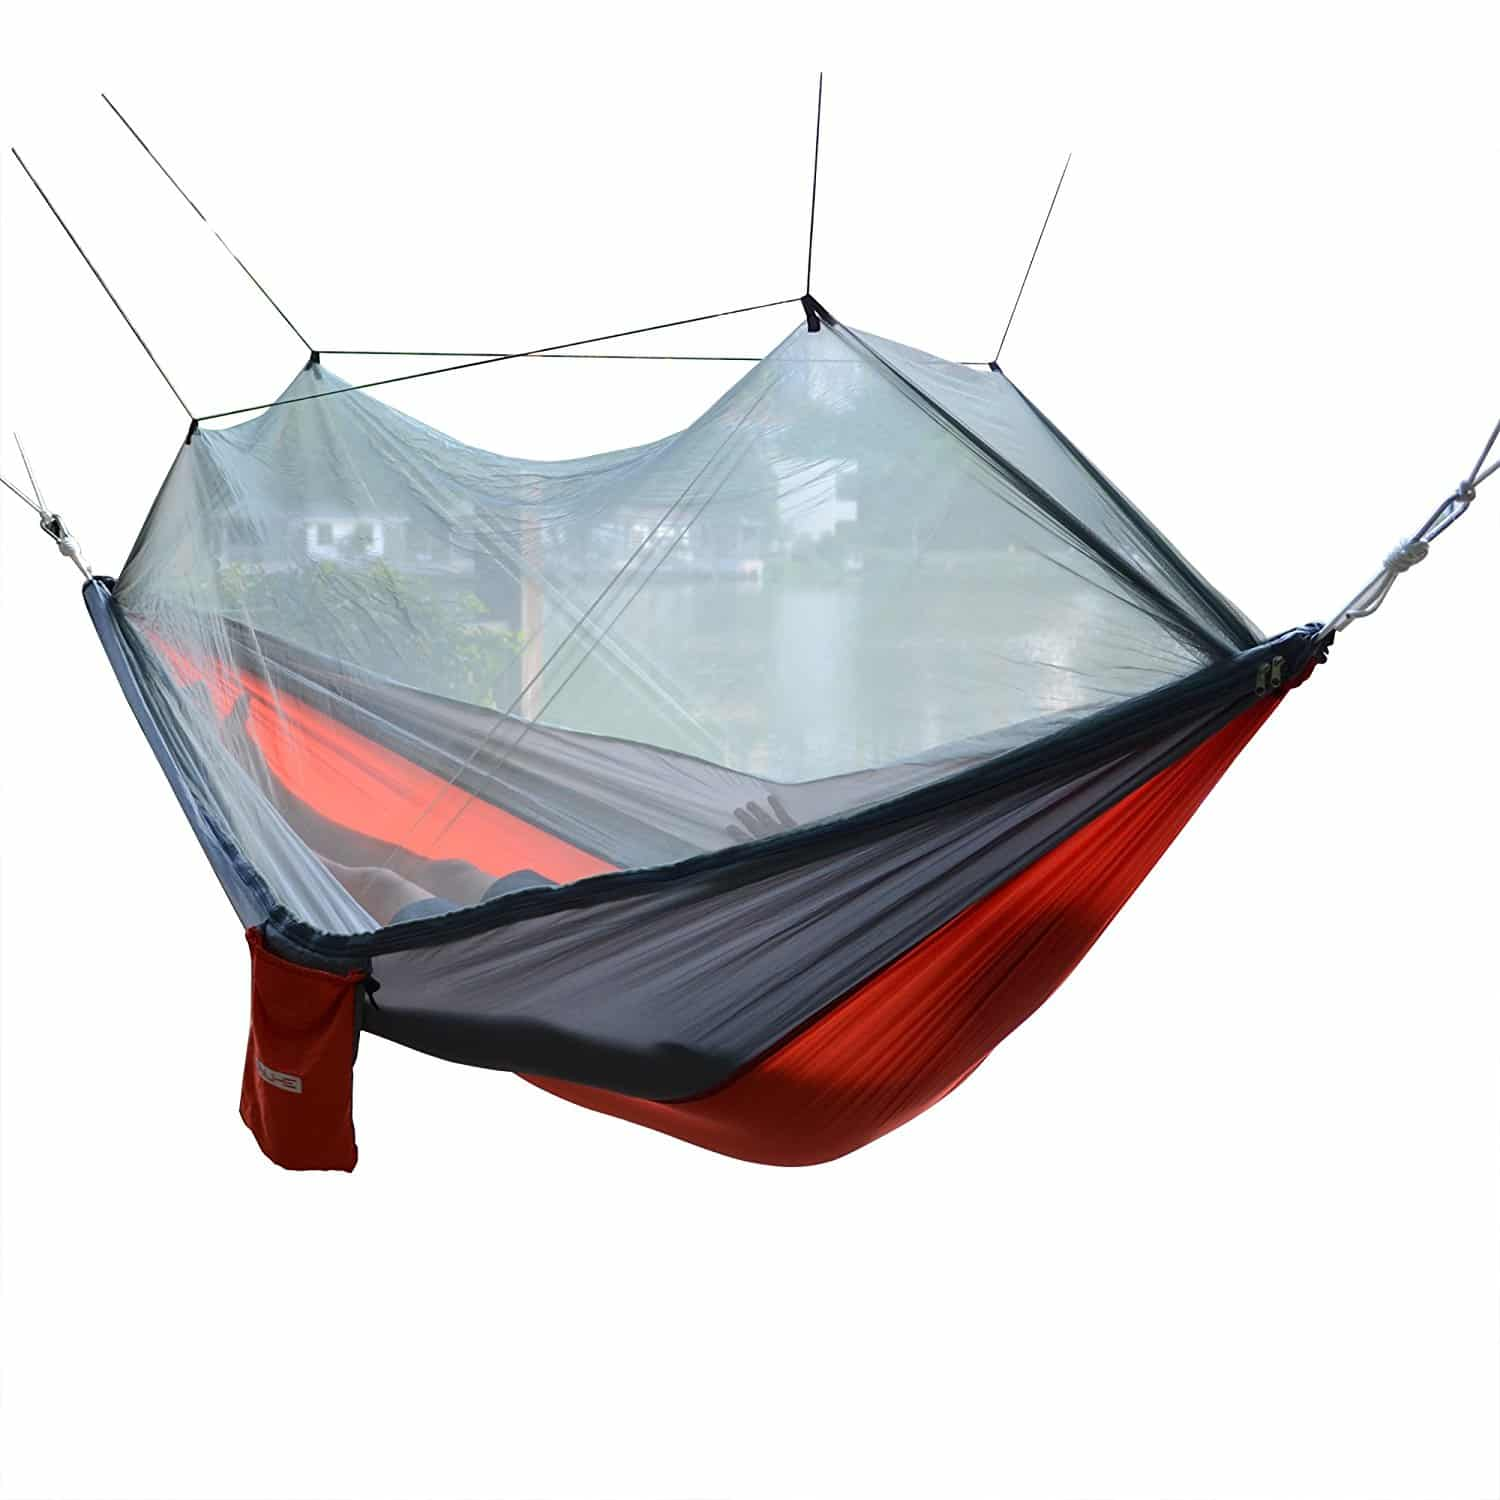 Qyuhe® Double Camping Hammocks